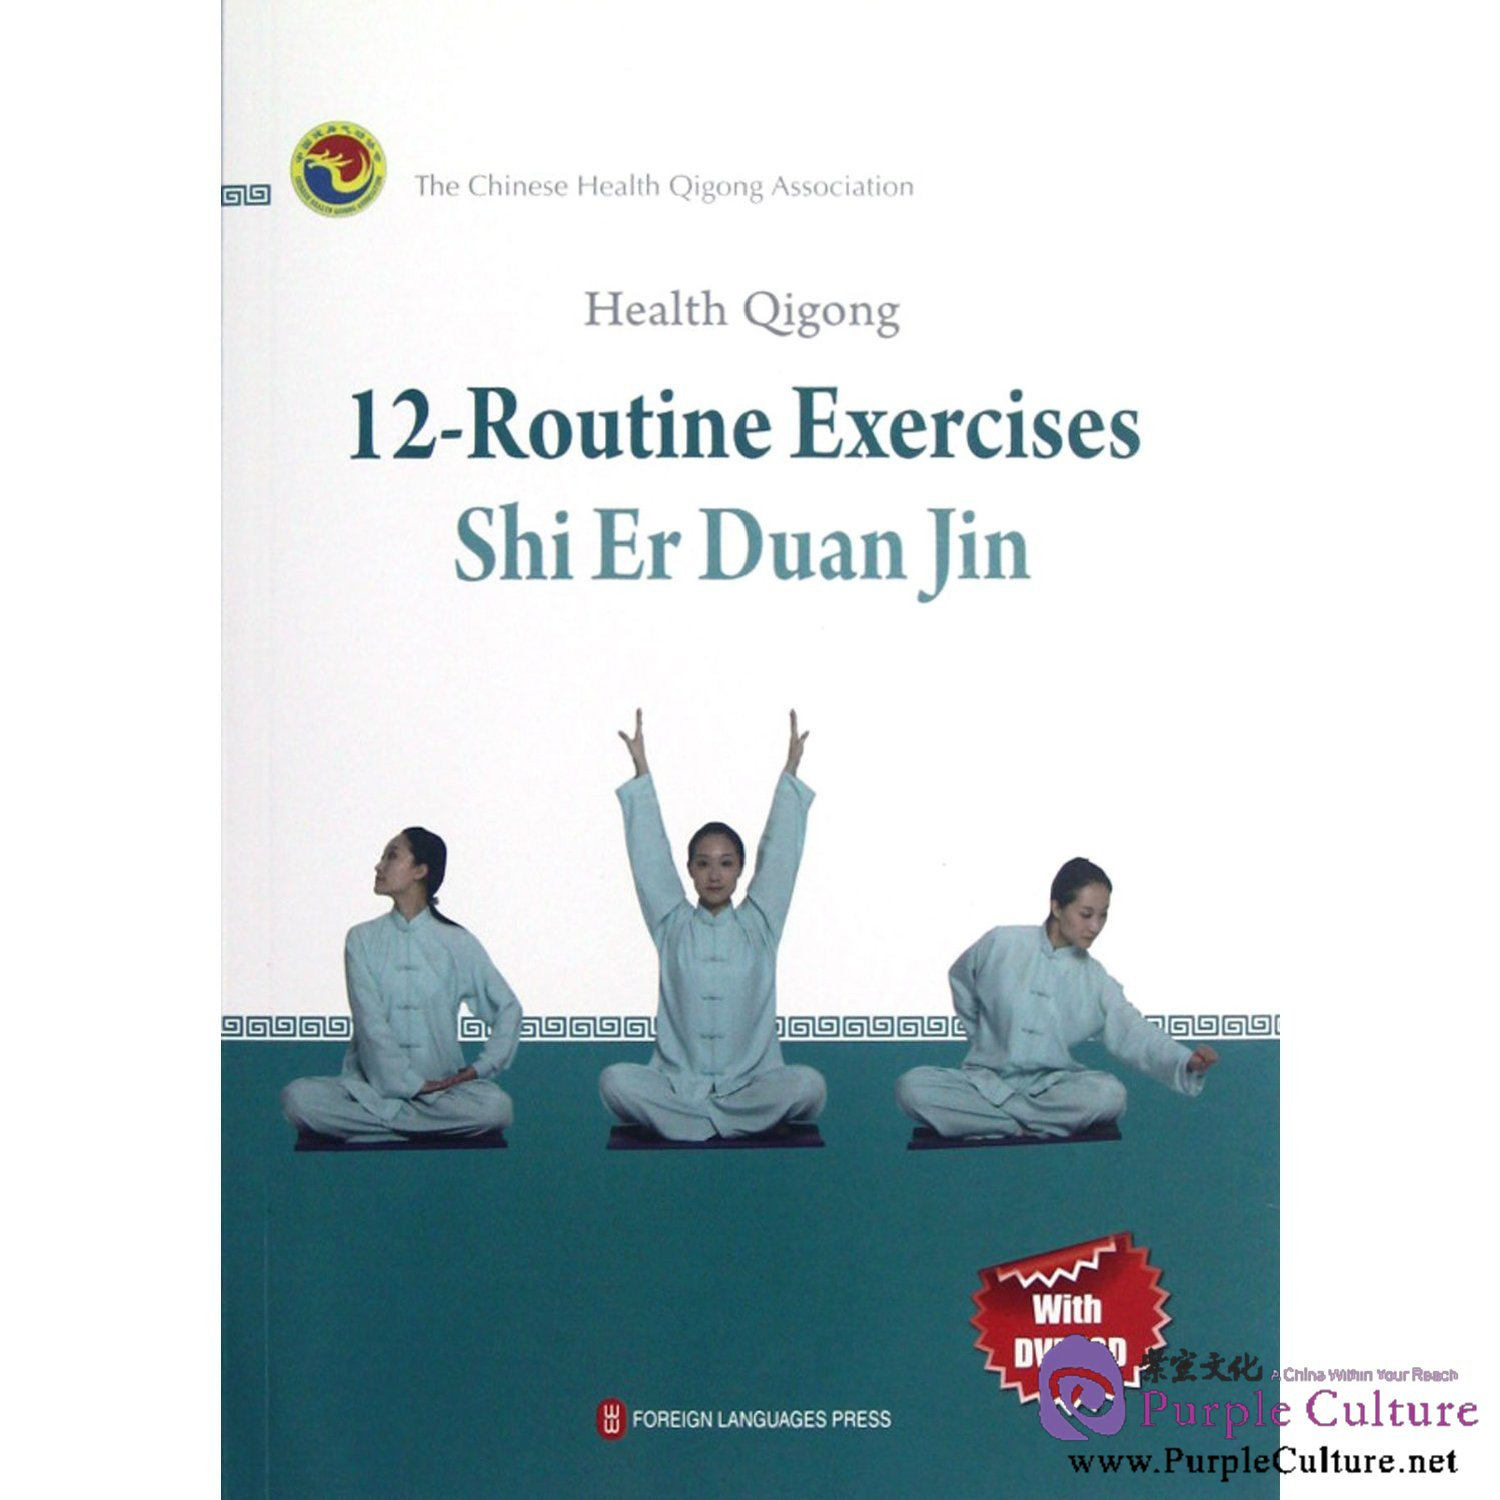 Health Qigong: 12-Routine Exercises Shi Er Duan Jin (with